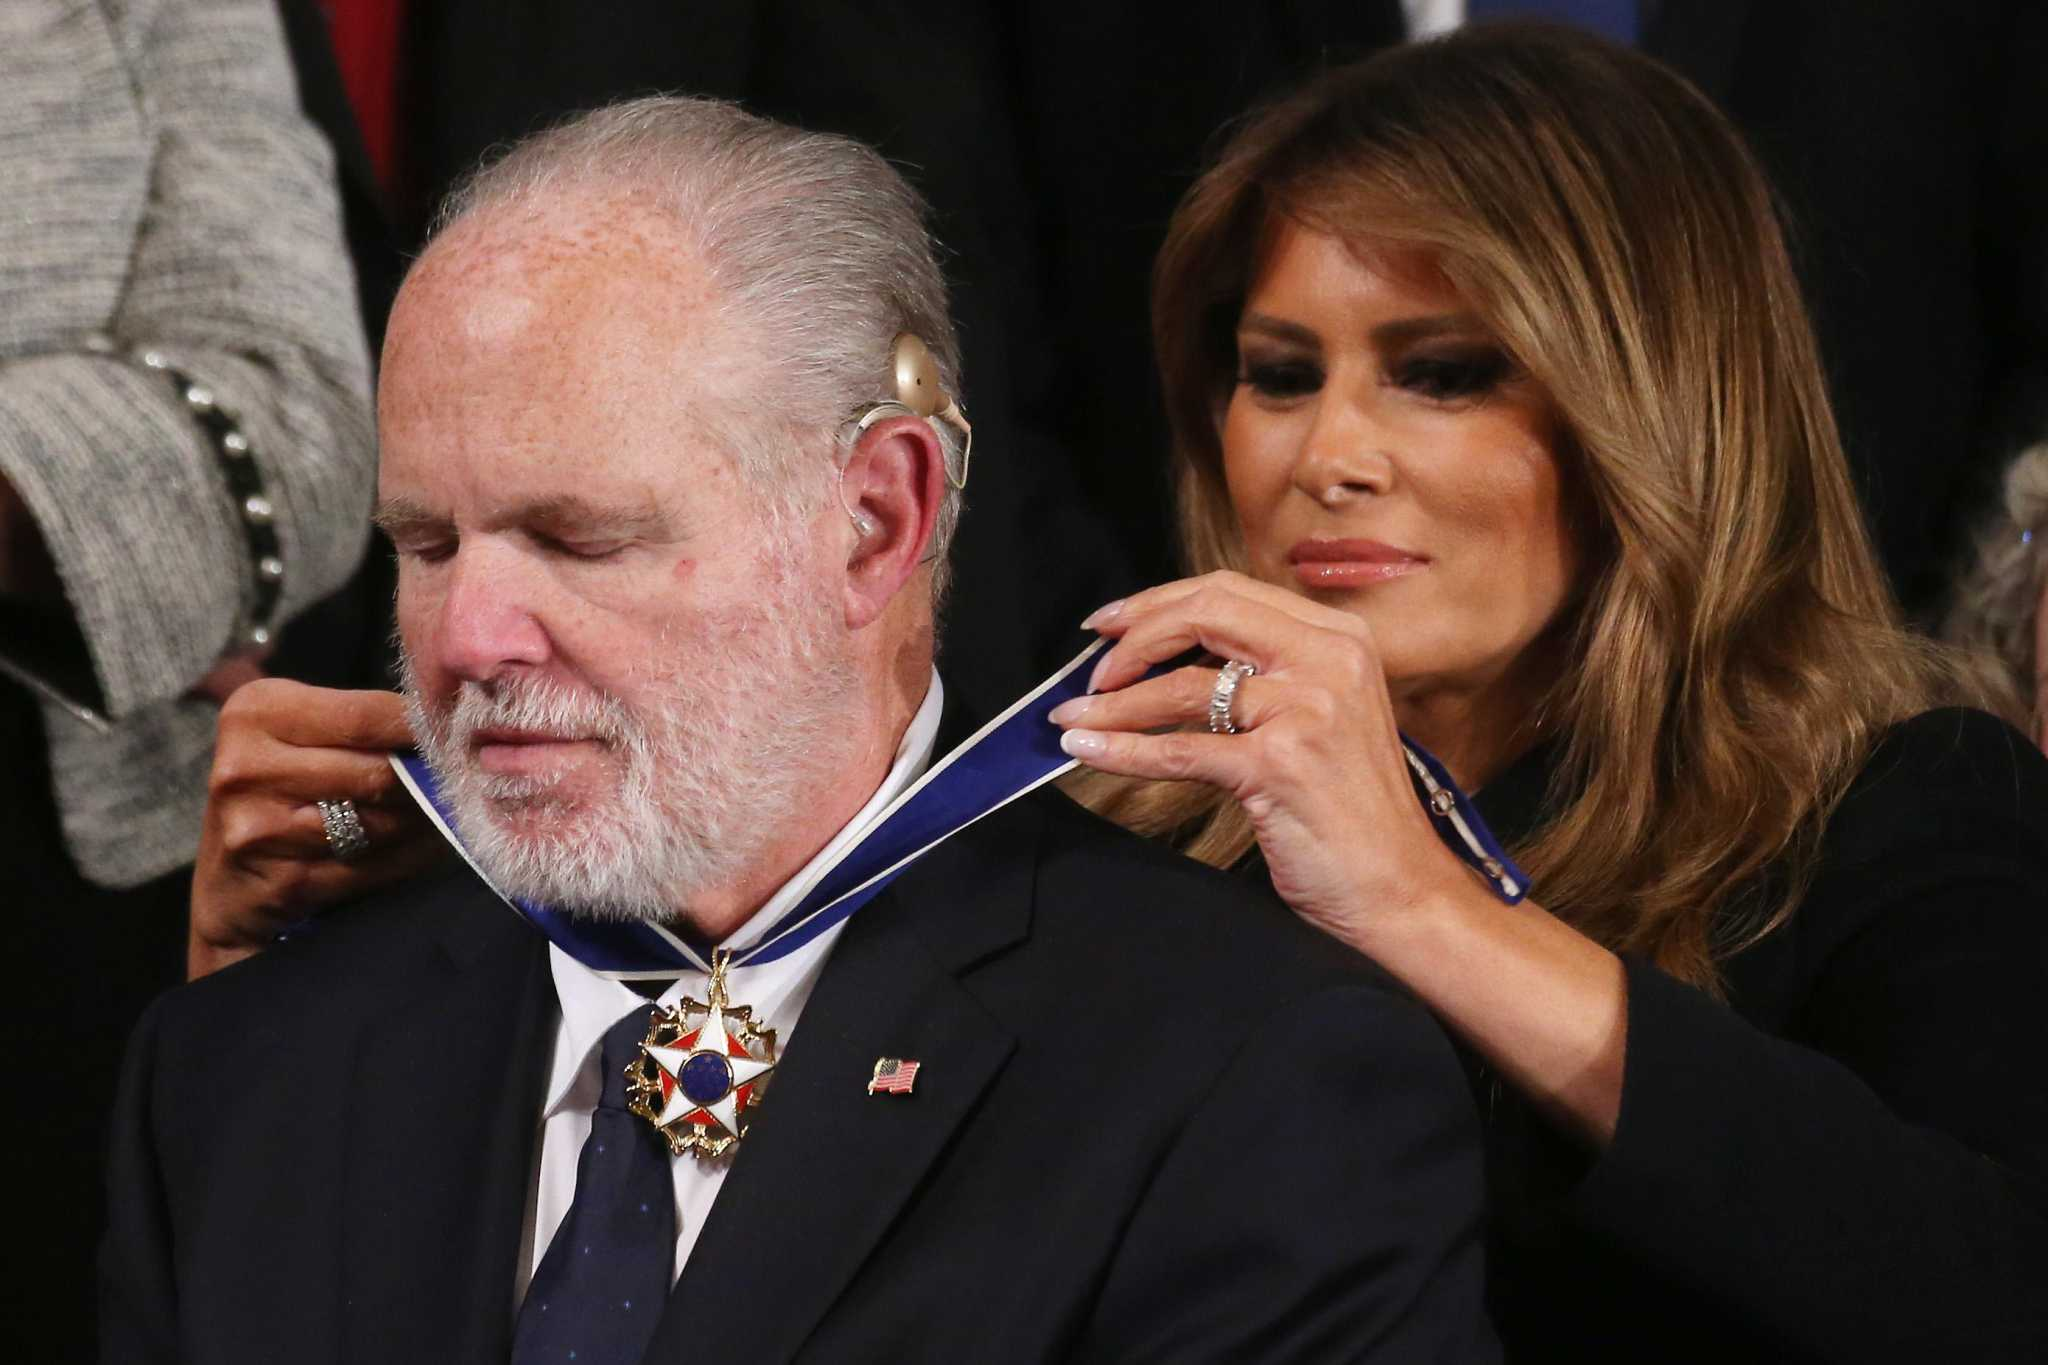 Conservative radio host Rush Limbaugh says his lung cancer is terminal